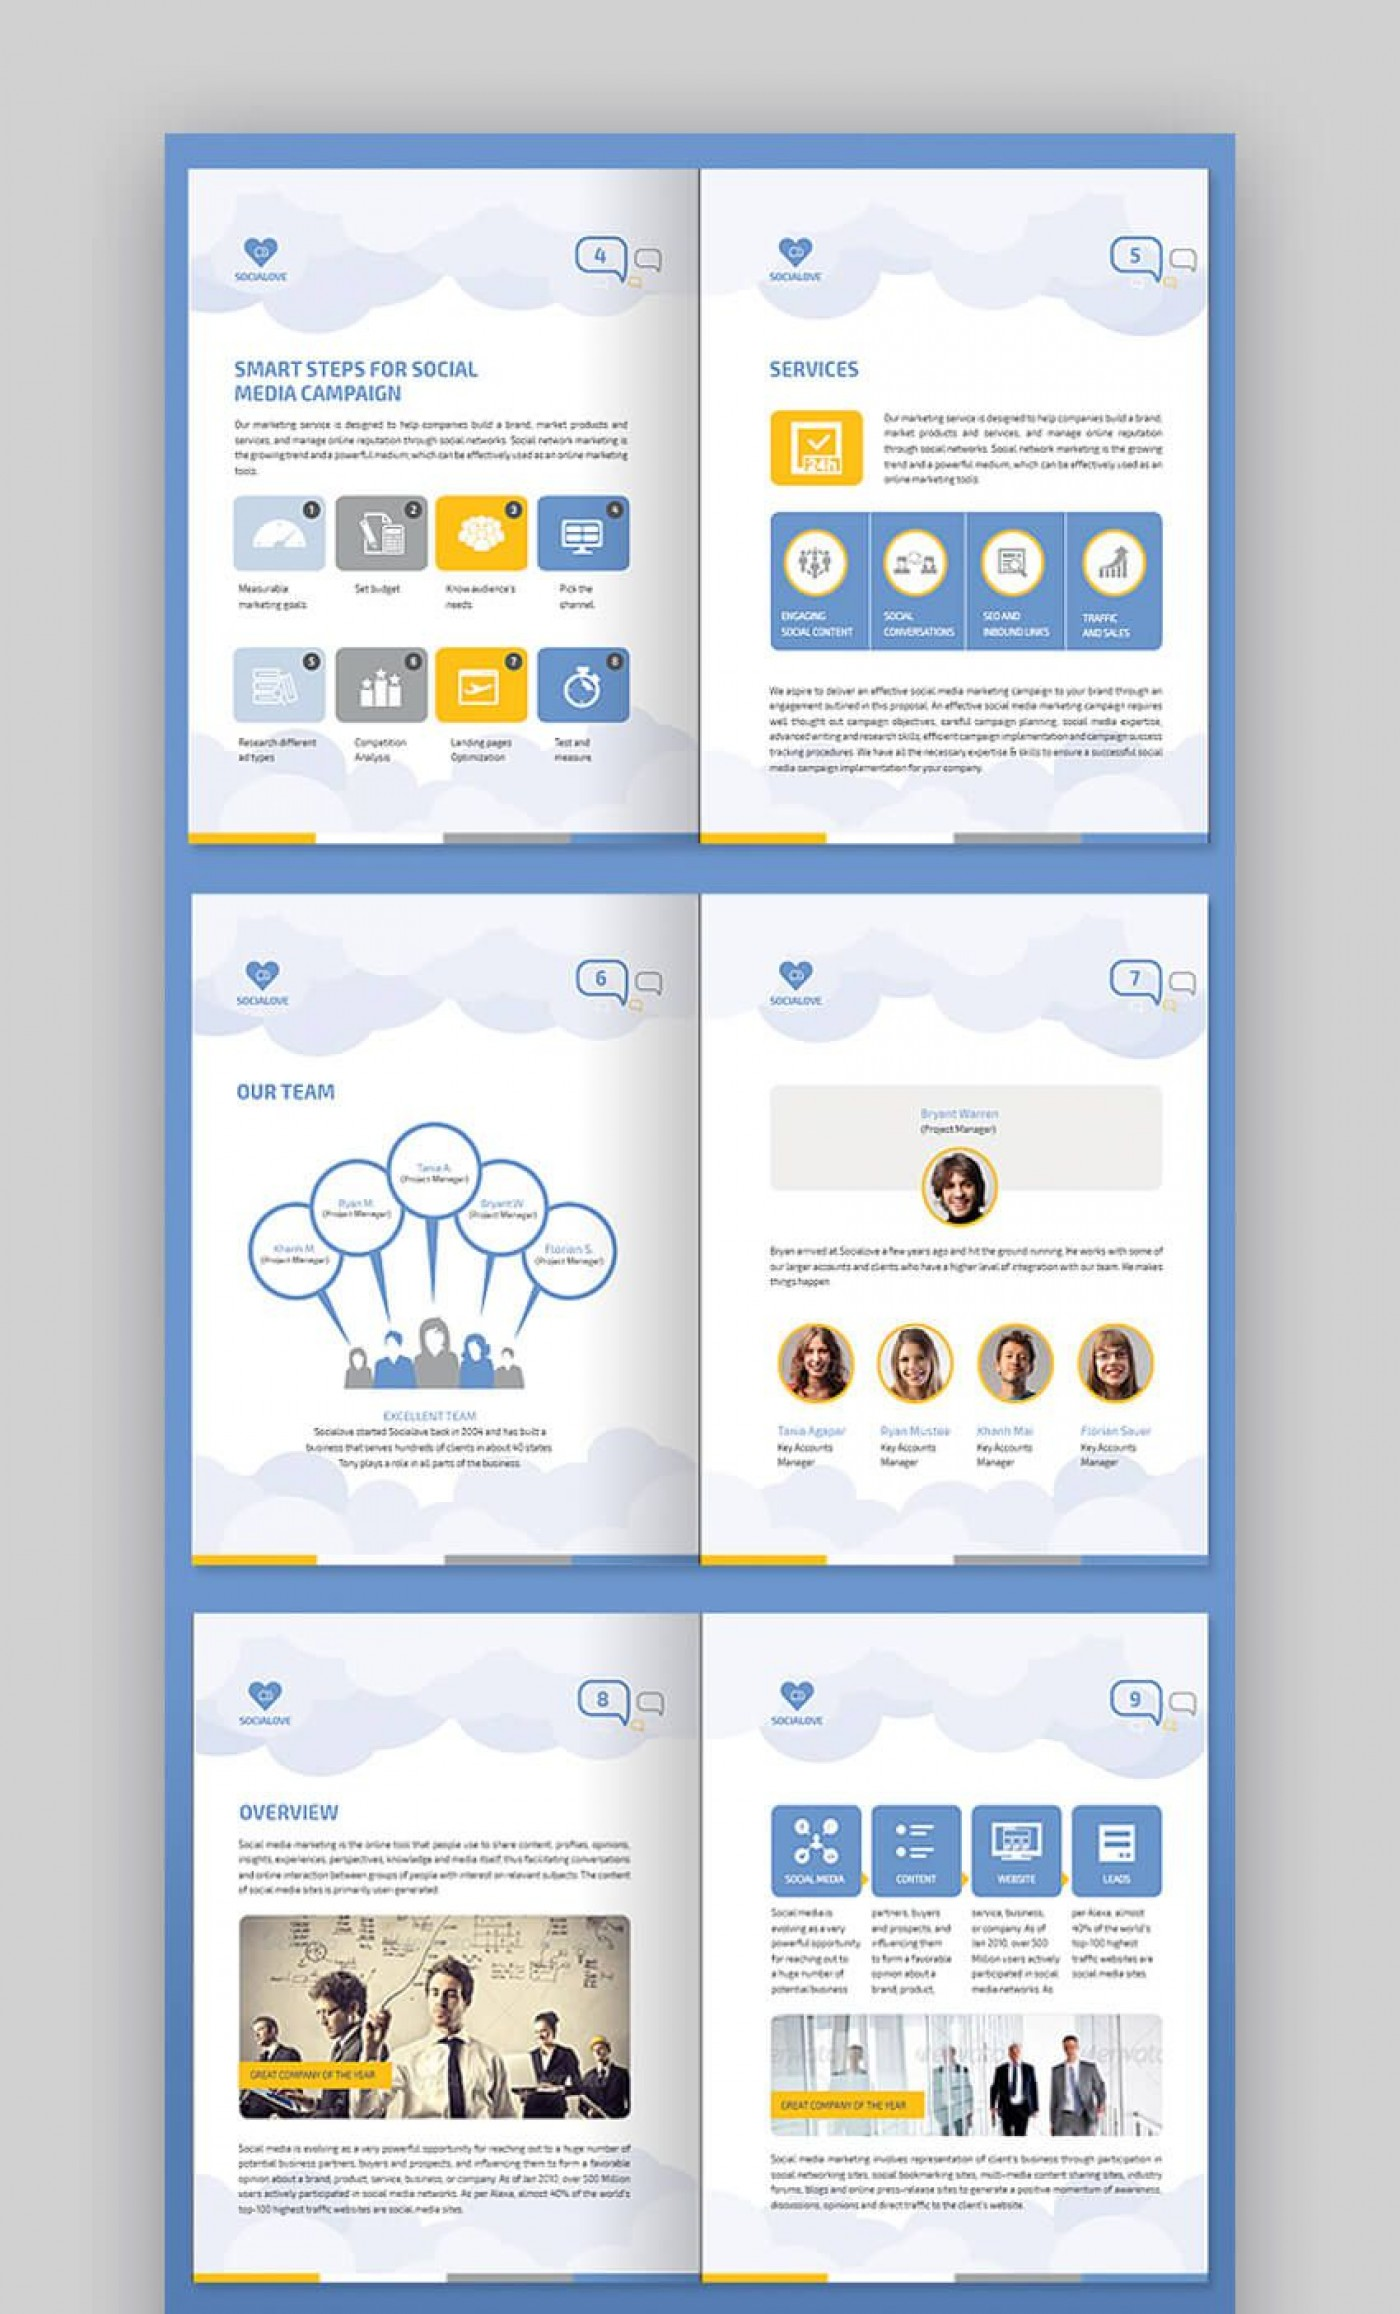 009 Imposing Social Media Proposal Template Image  Plan Sample Pdf 20181400